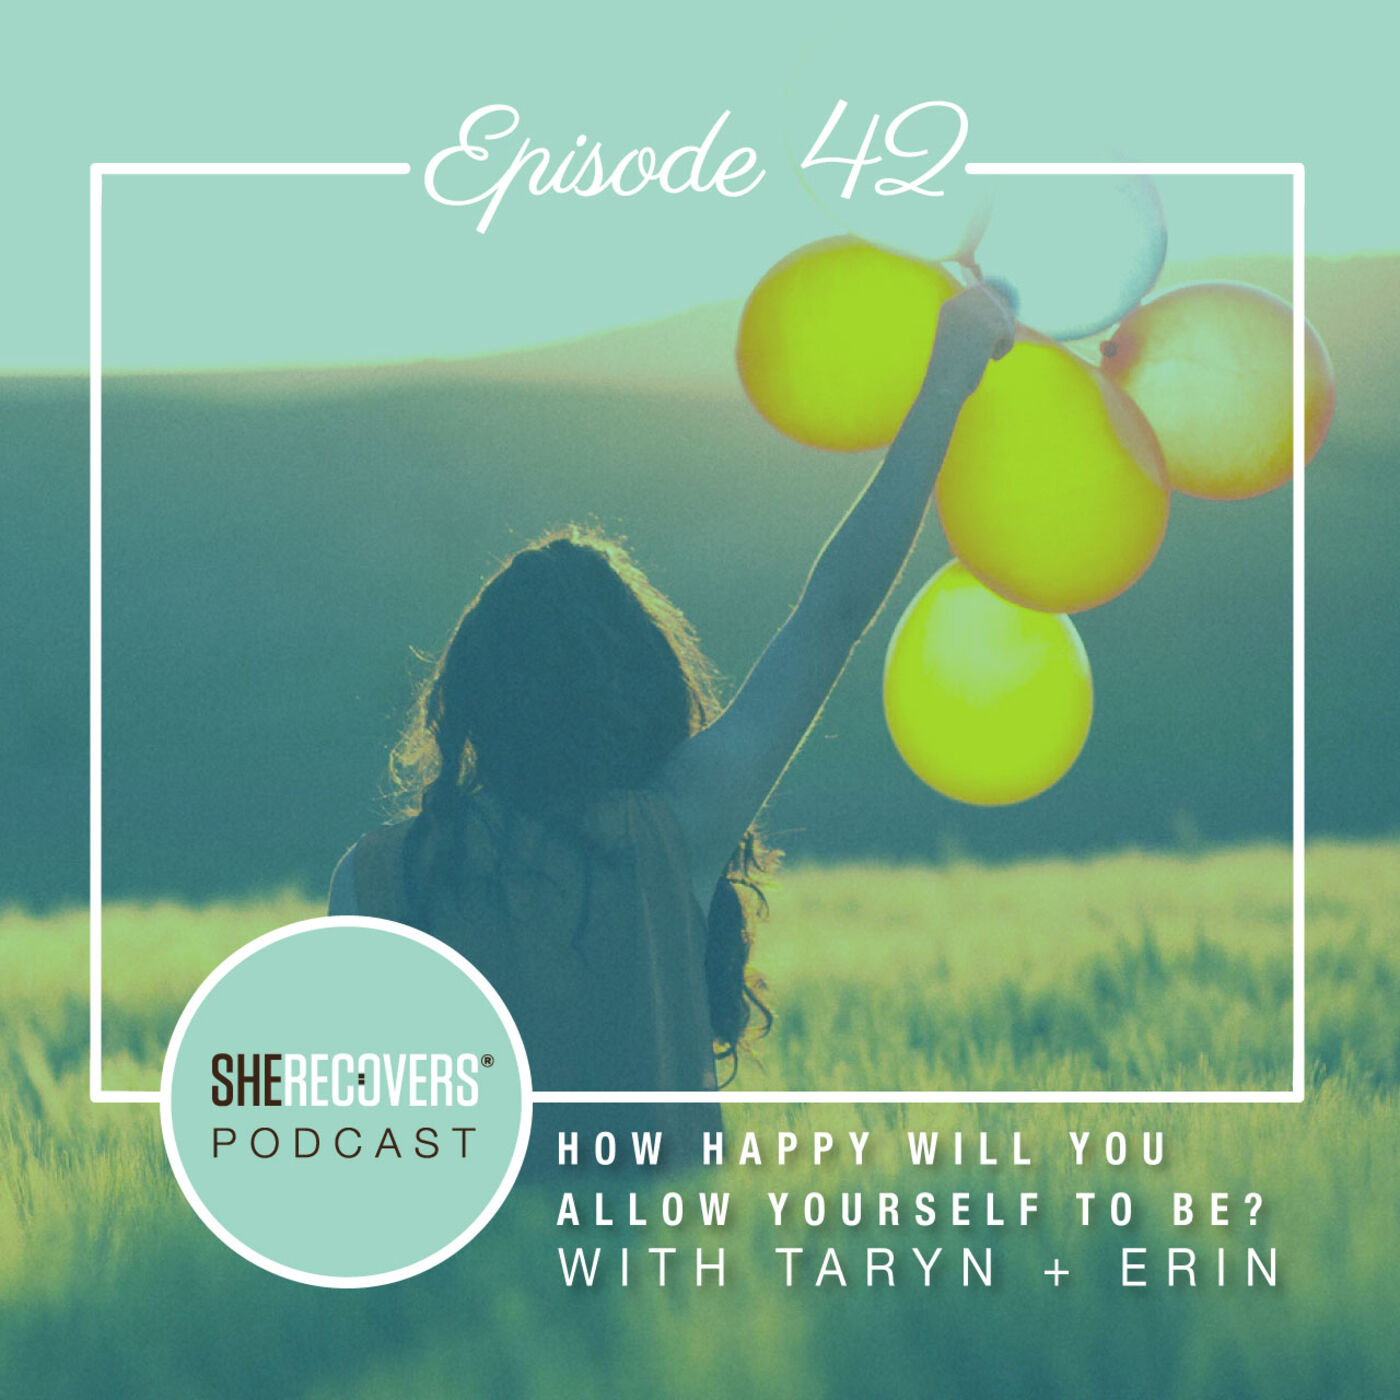 Episode 42: How Happy Will You Allow Yourself To Be?